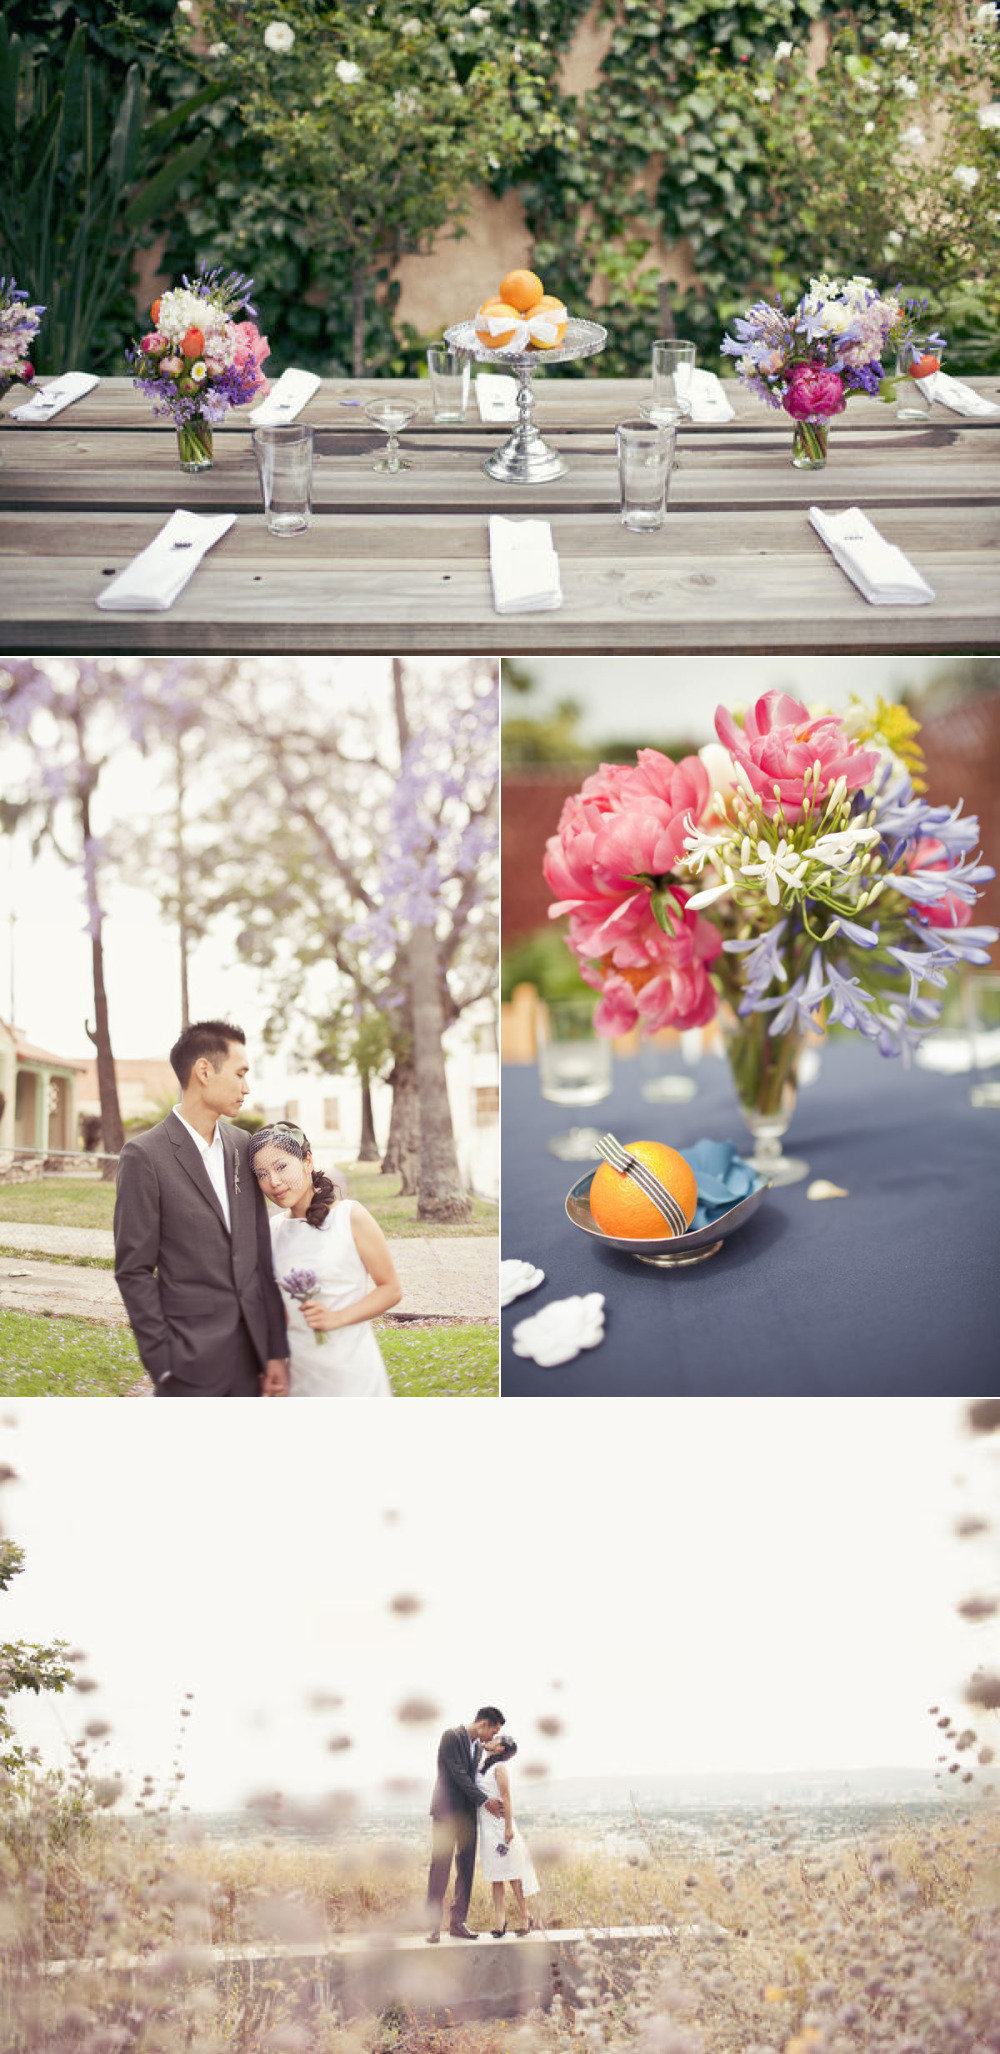 Culver City Wedding 2